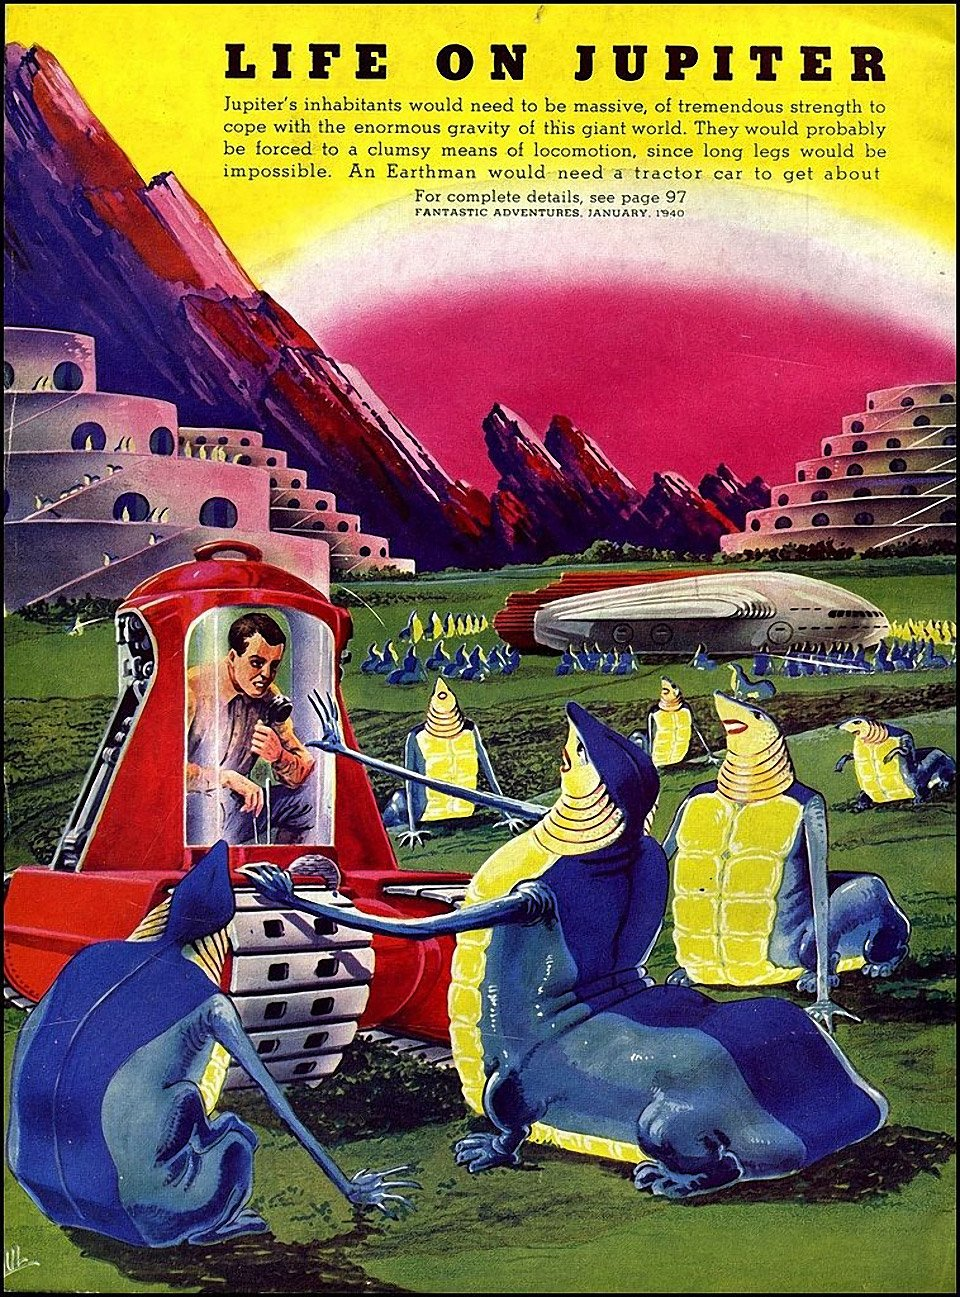 Future Space Travel and Alien Life as Seen in 1940